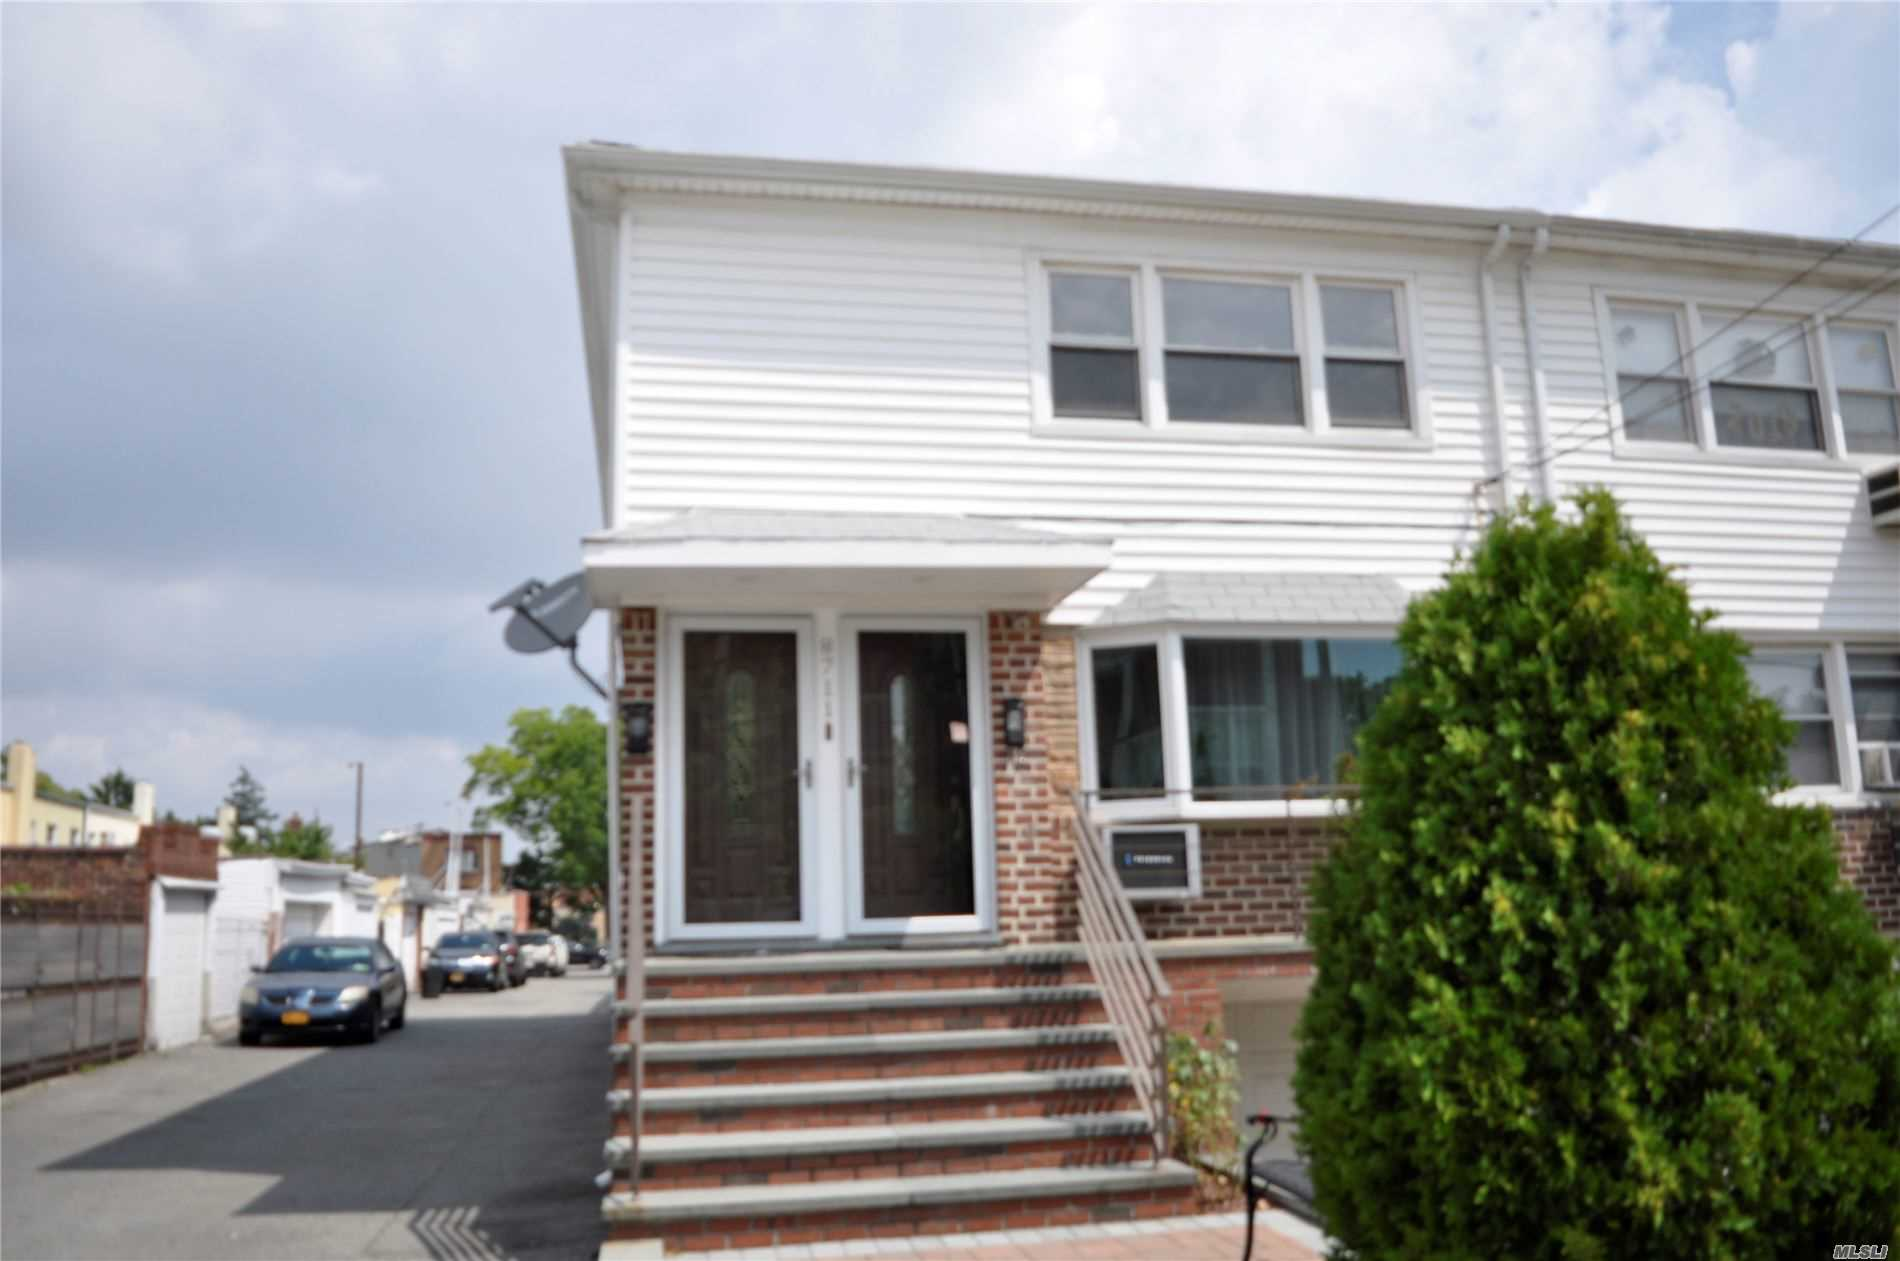 87-11 78th Ave, 2 - Glendale, New York